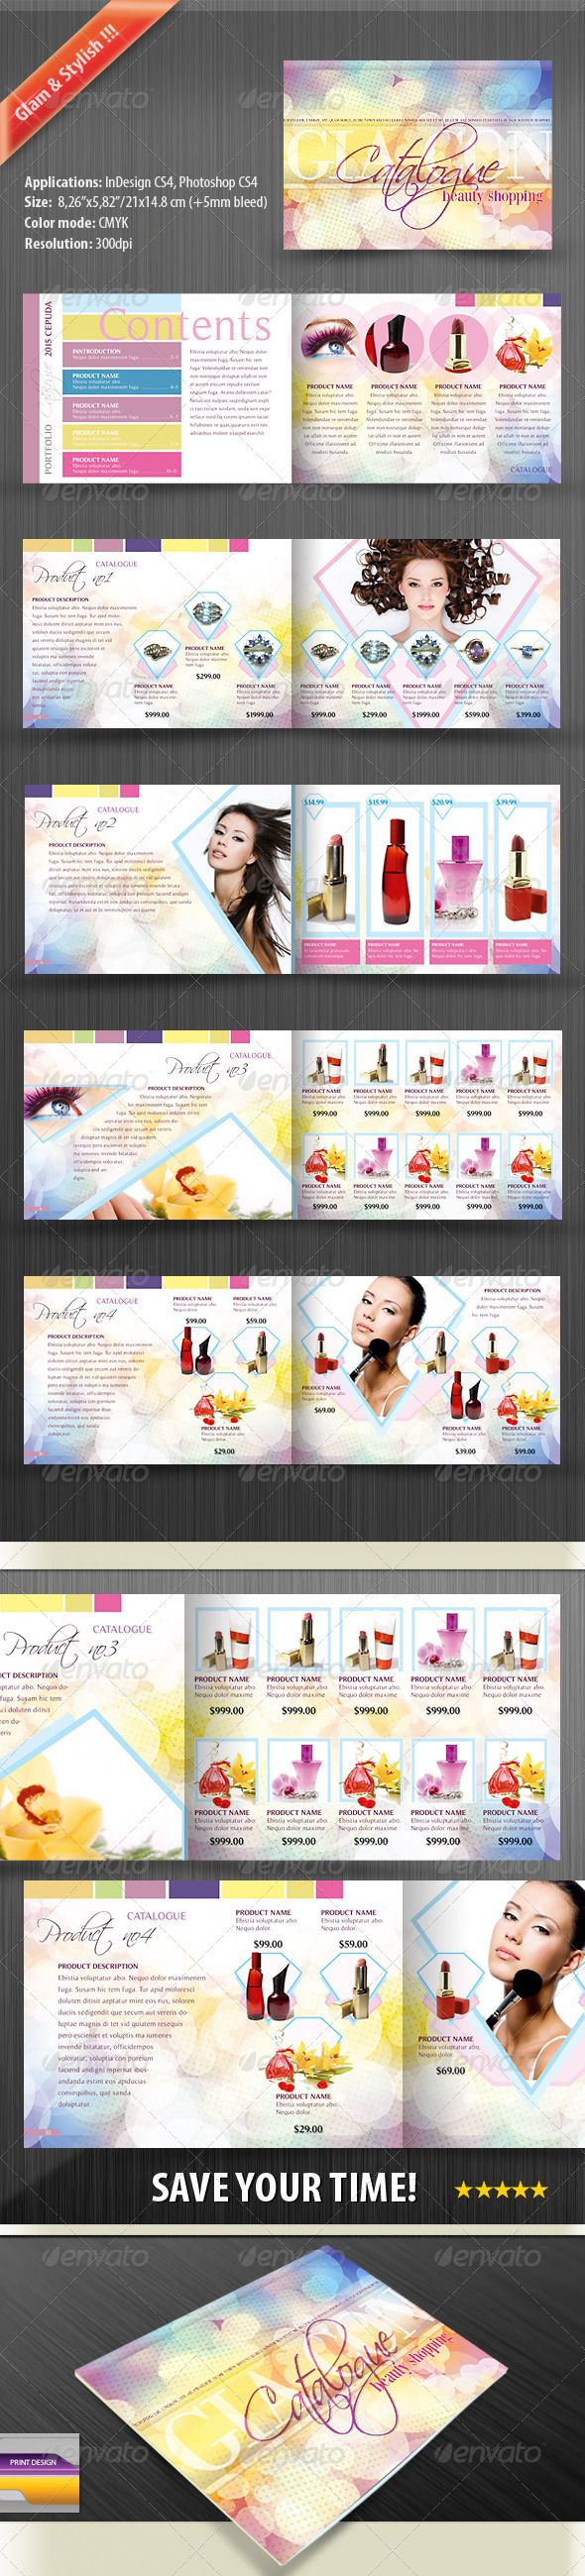 Product Catalog Design Template for Women - Catalogs Brochures Template PSD, InDesign INDD. Download here: https://graphicriver.net/item/product-catalog-for-women/676564?s_rank=709&ref=yinkira